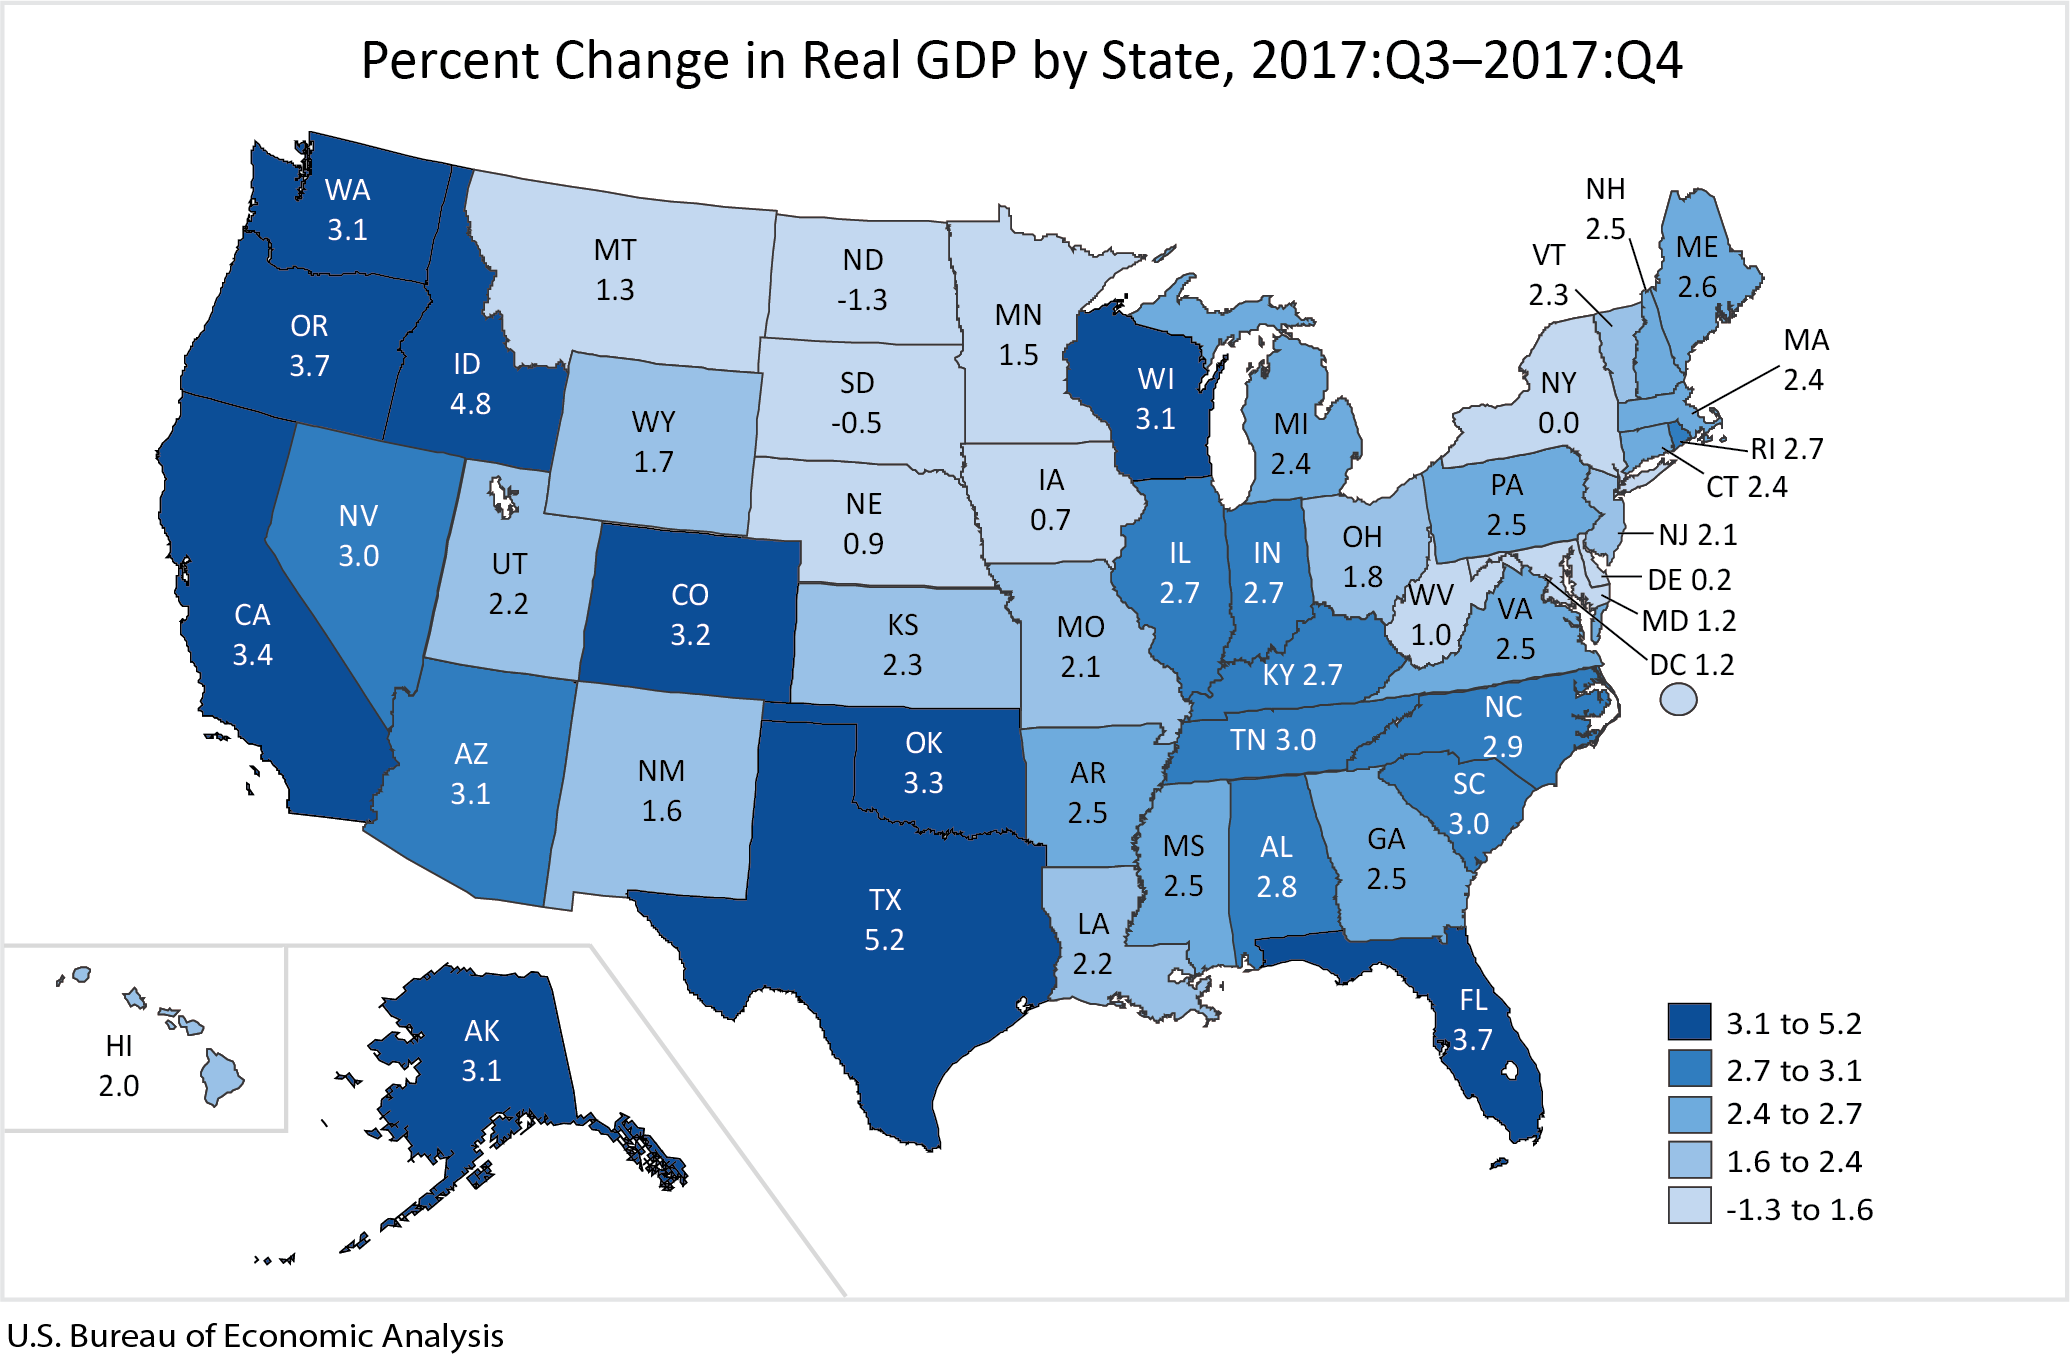 Map showing Percent Change in Real GDP by State.